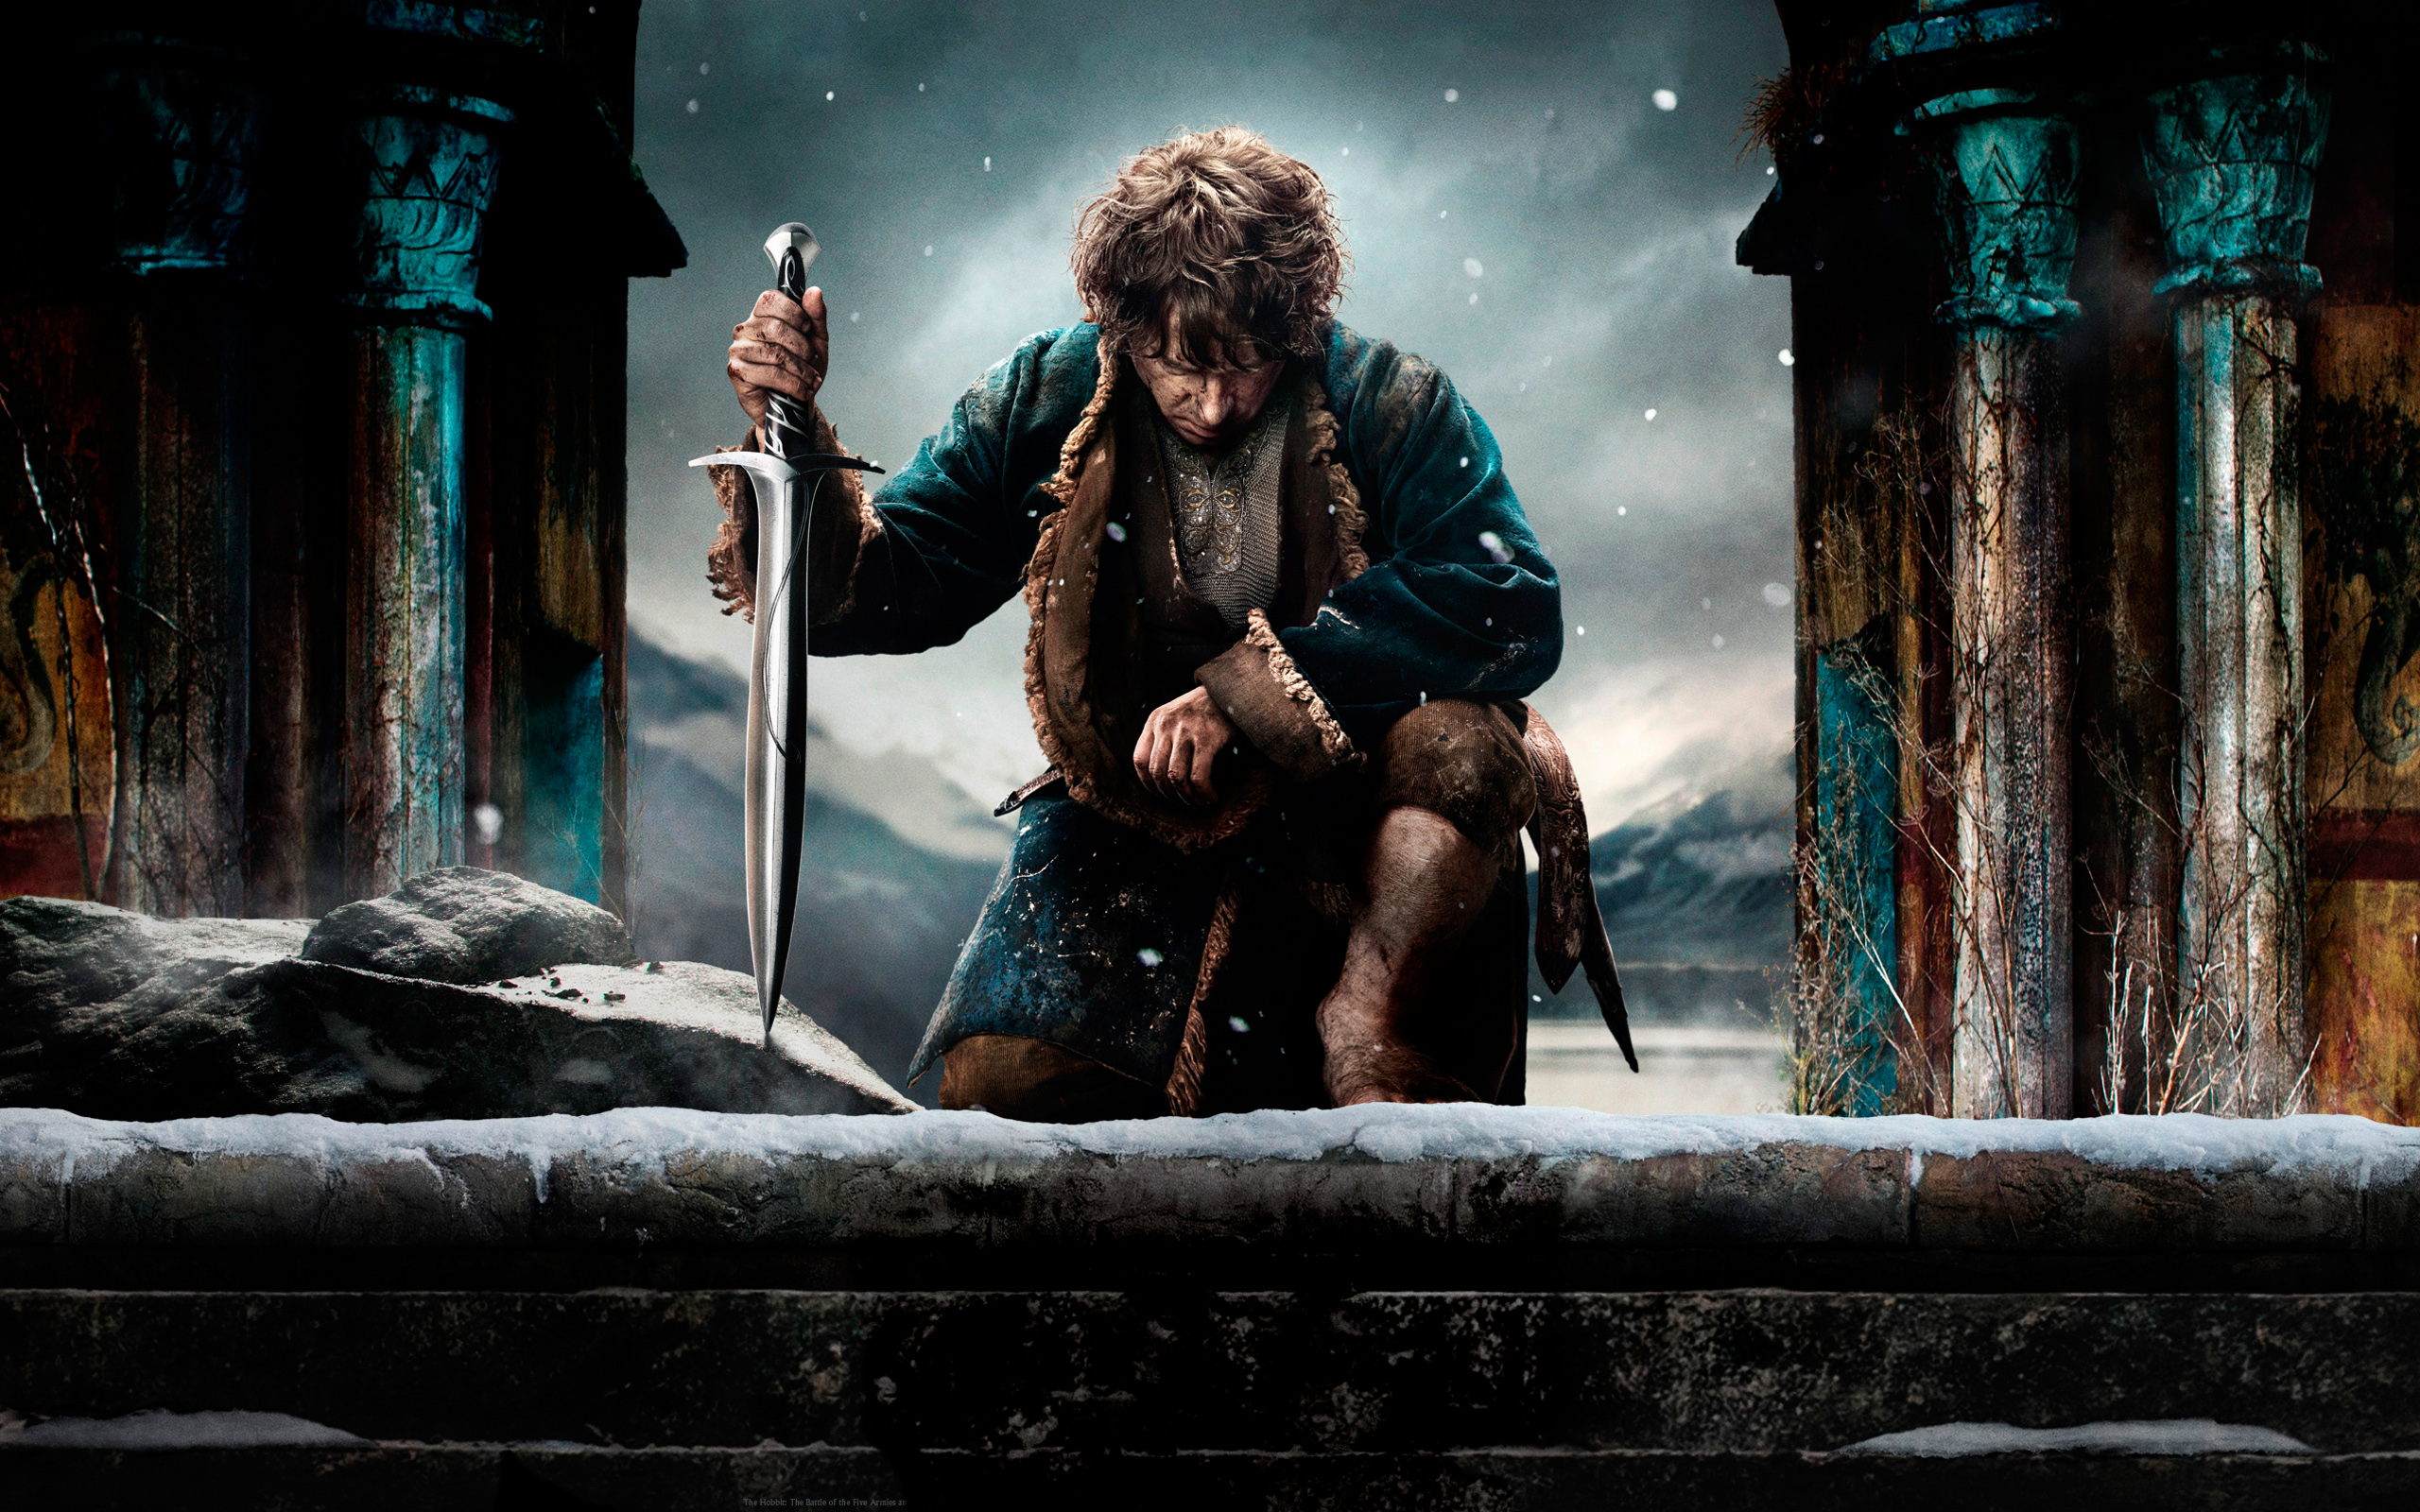 The Hobbit The Battle of the Five Armies Movie